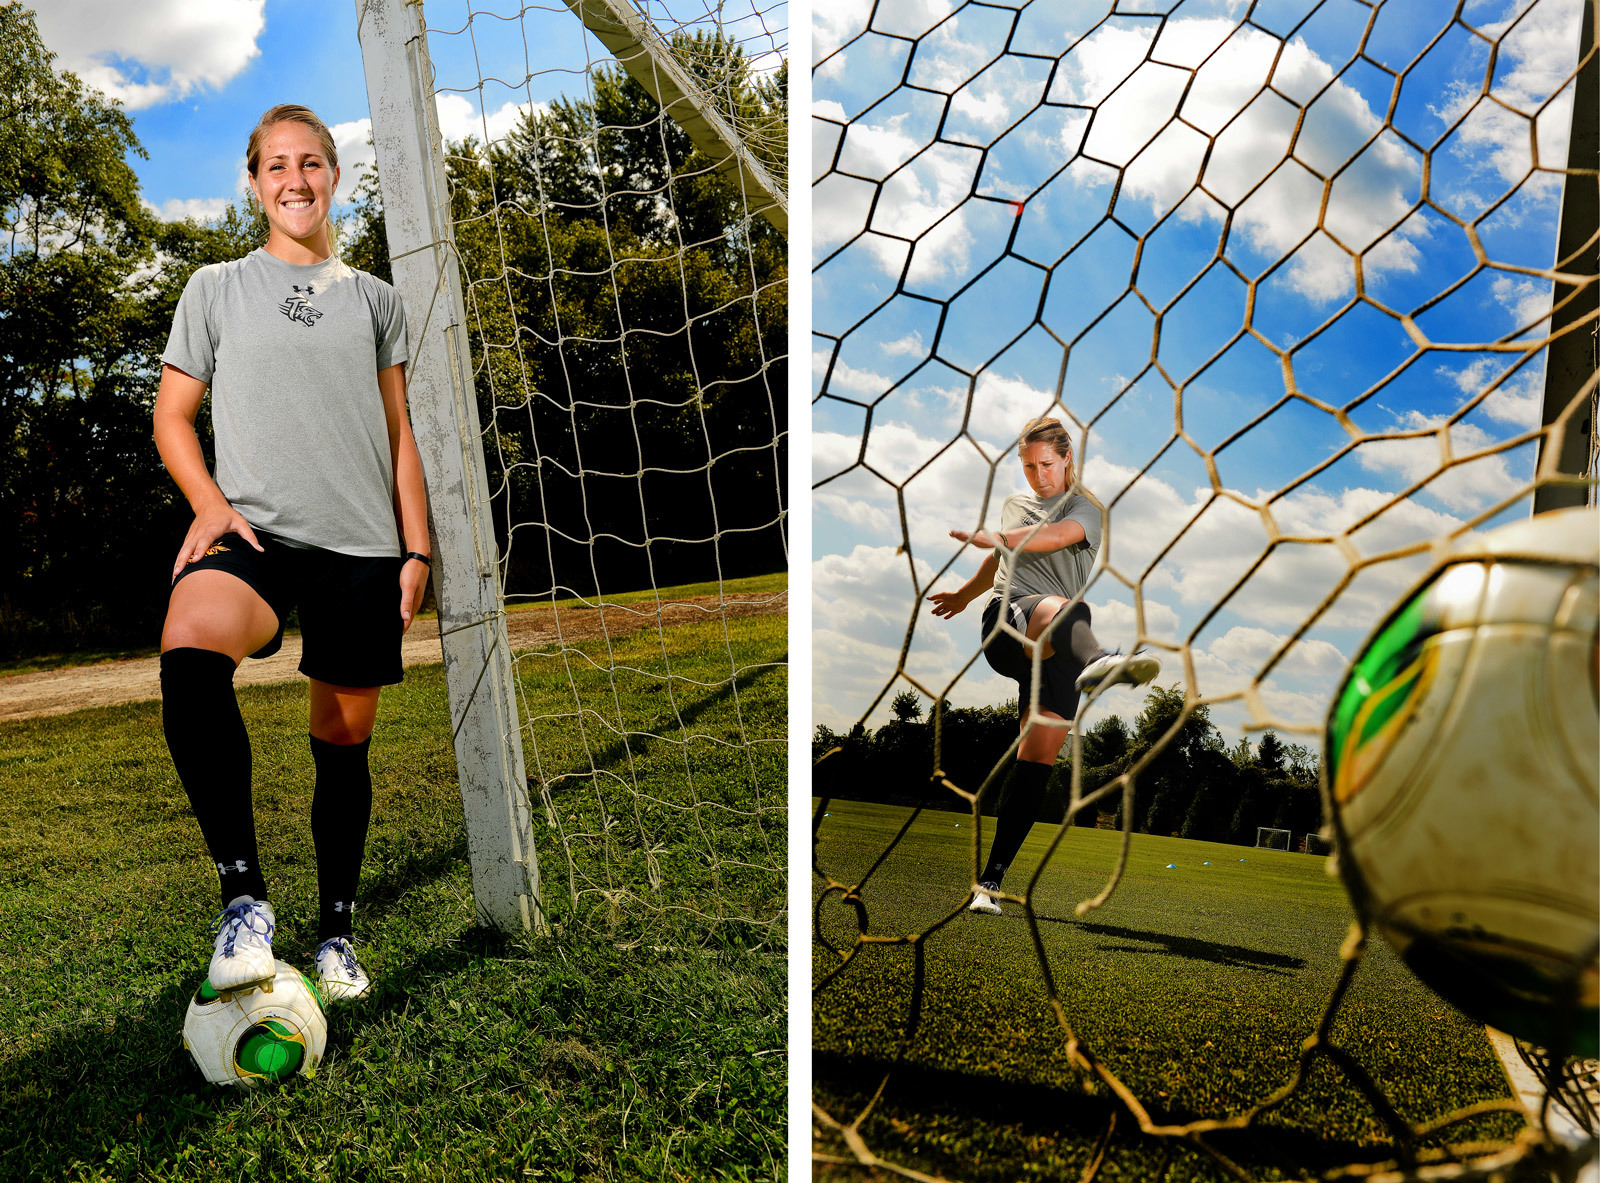 Towson University women's soccer forward Emily Banes poses during practice on Sept. 19, 2013 in Baltimore, Md.